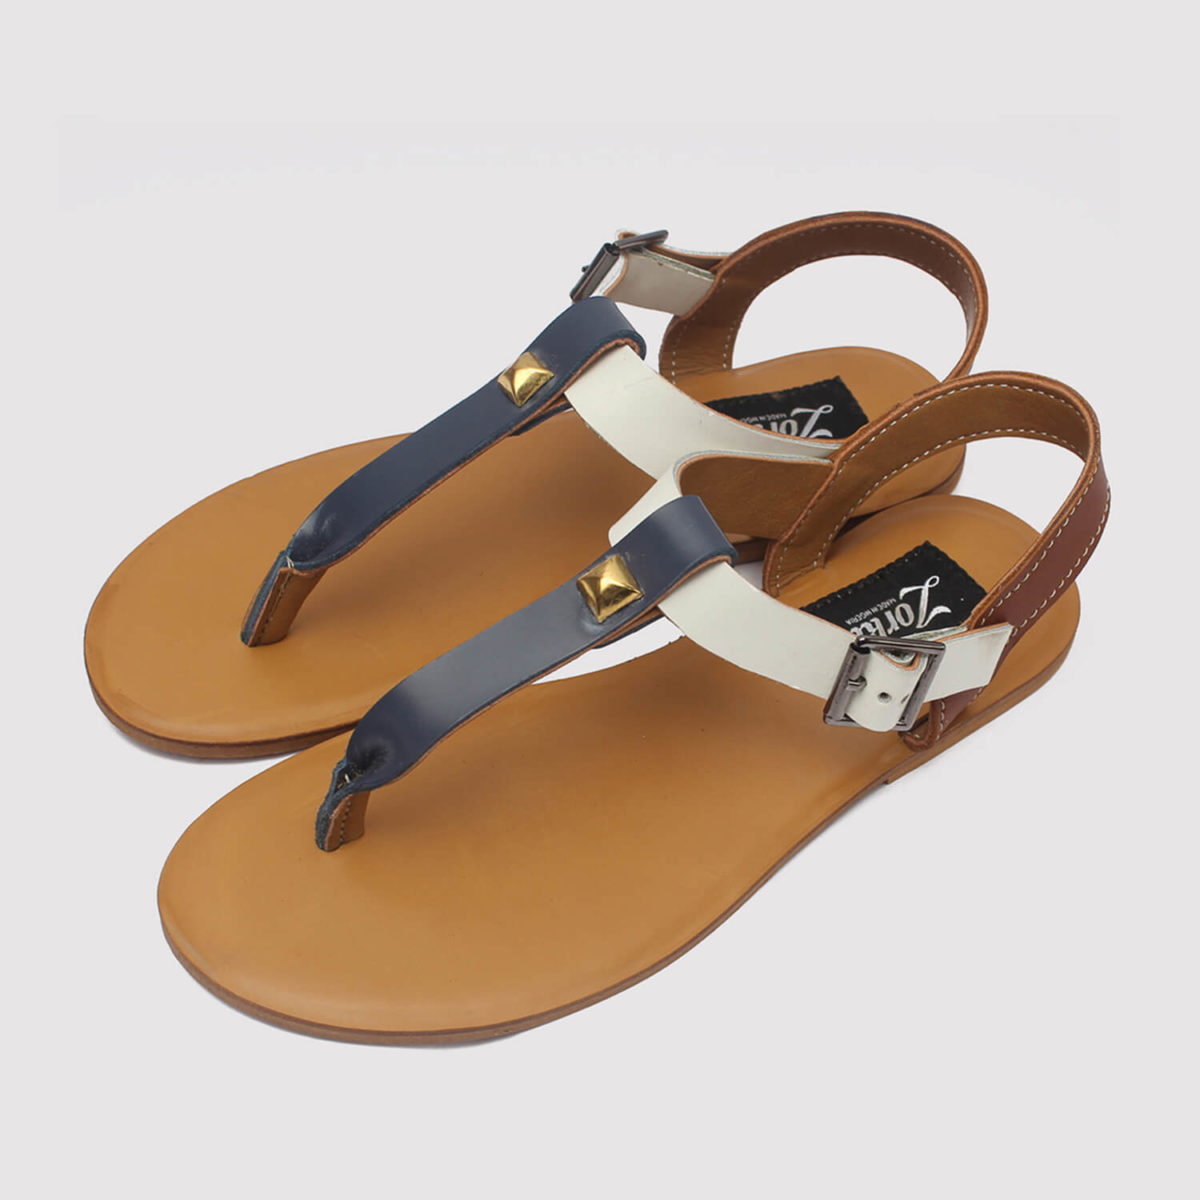 toke sandals blue brown white zorkle shoes in lagos nigeria